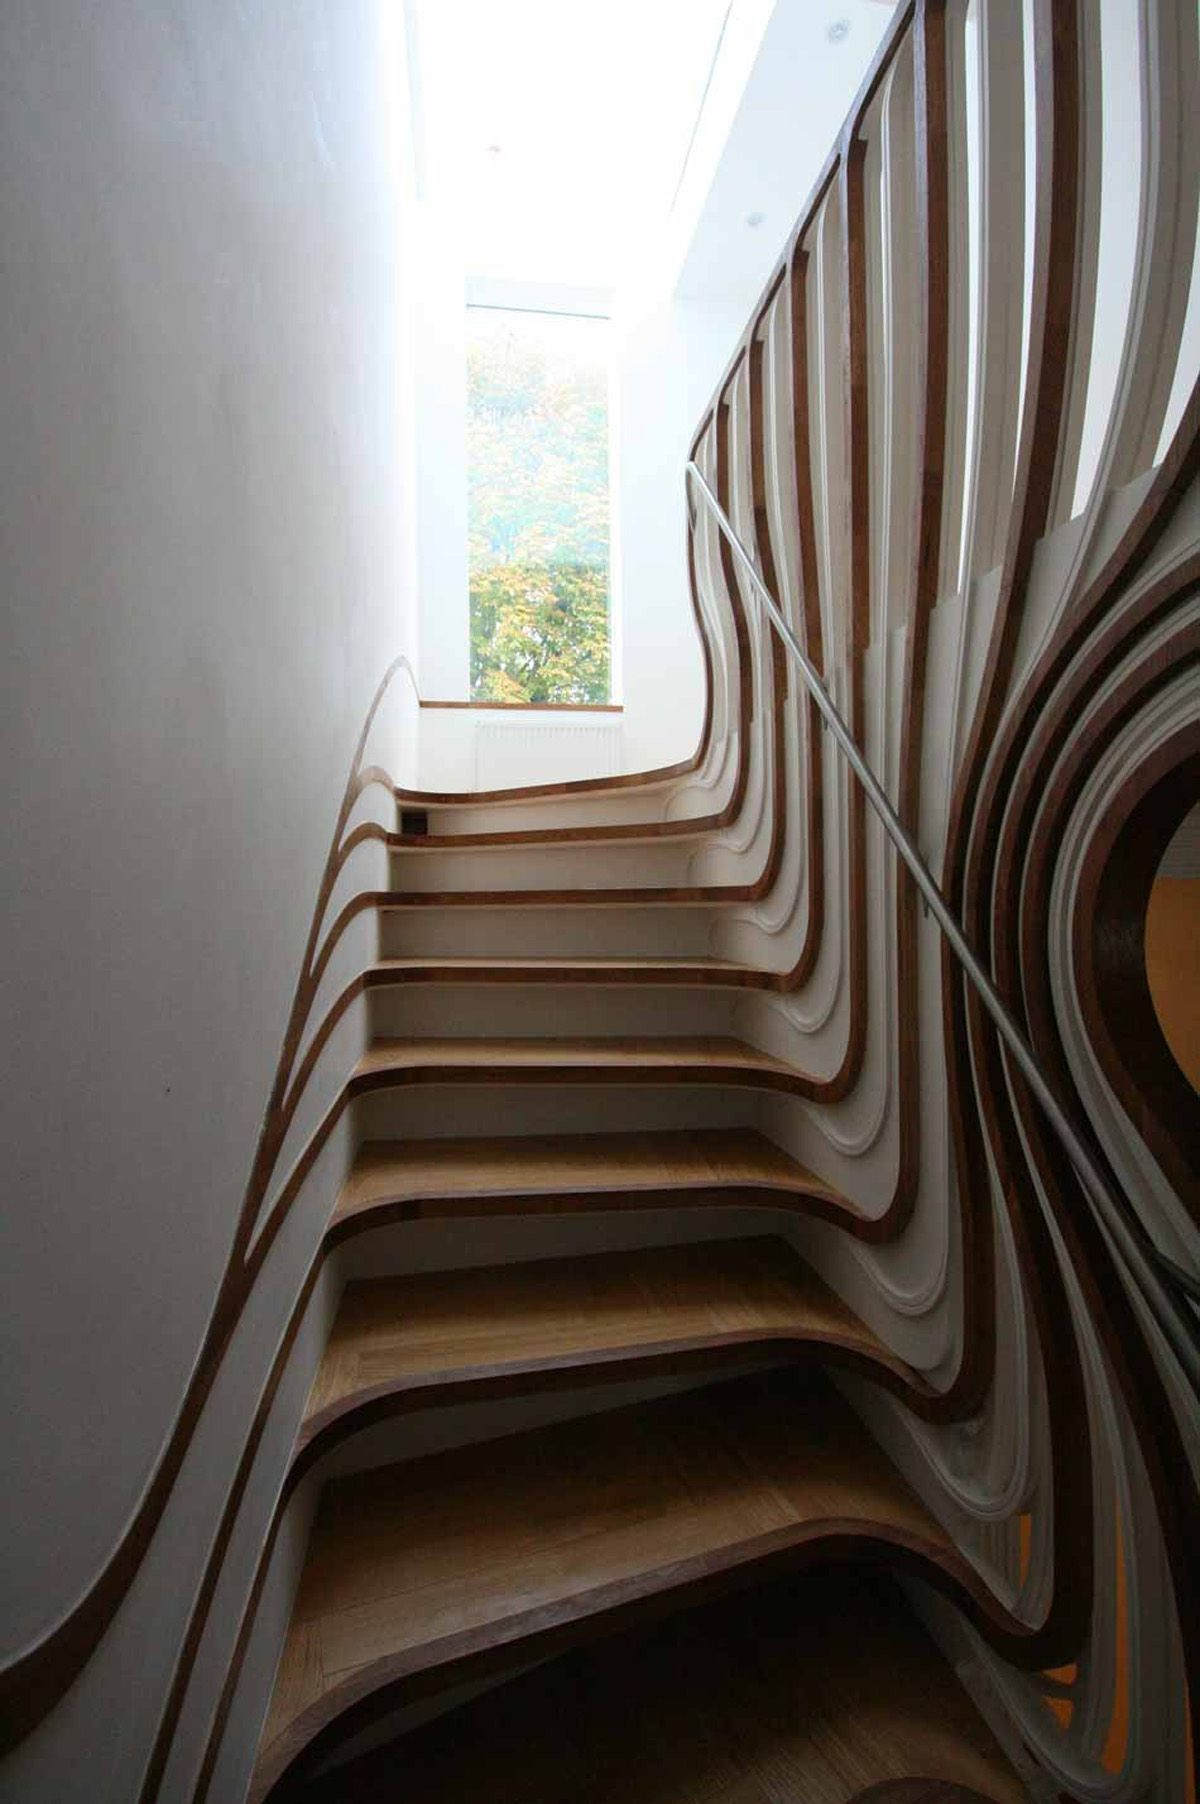 Stair Designs Images Of The Innovative Contemporary Wooden Stair ...